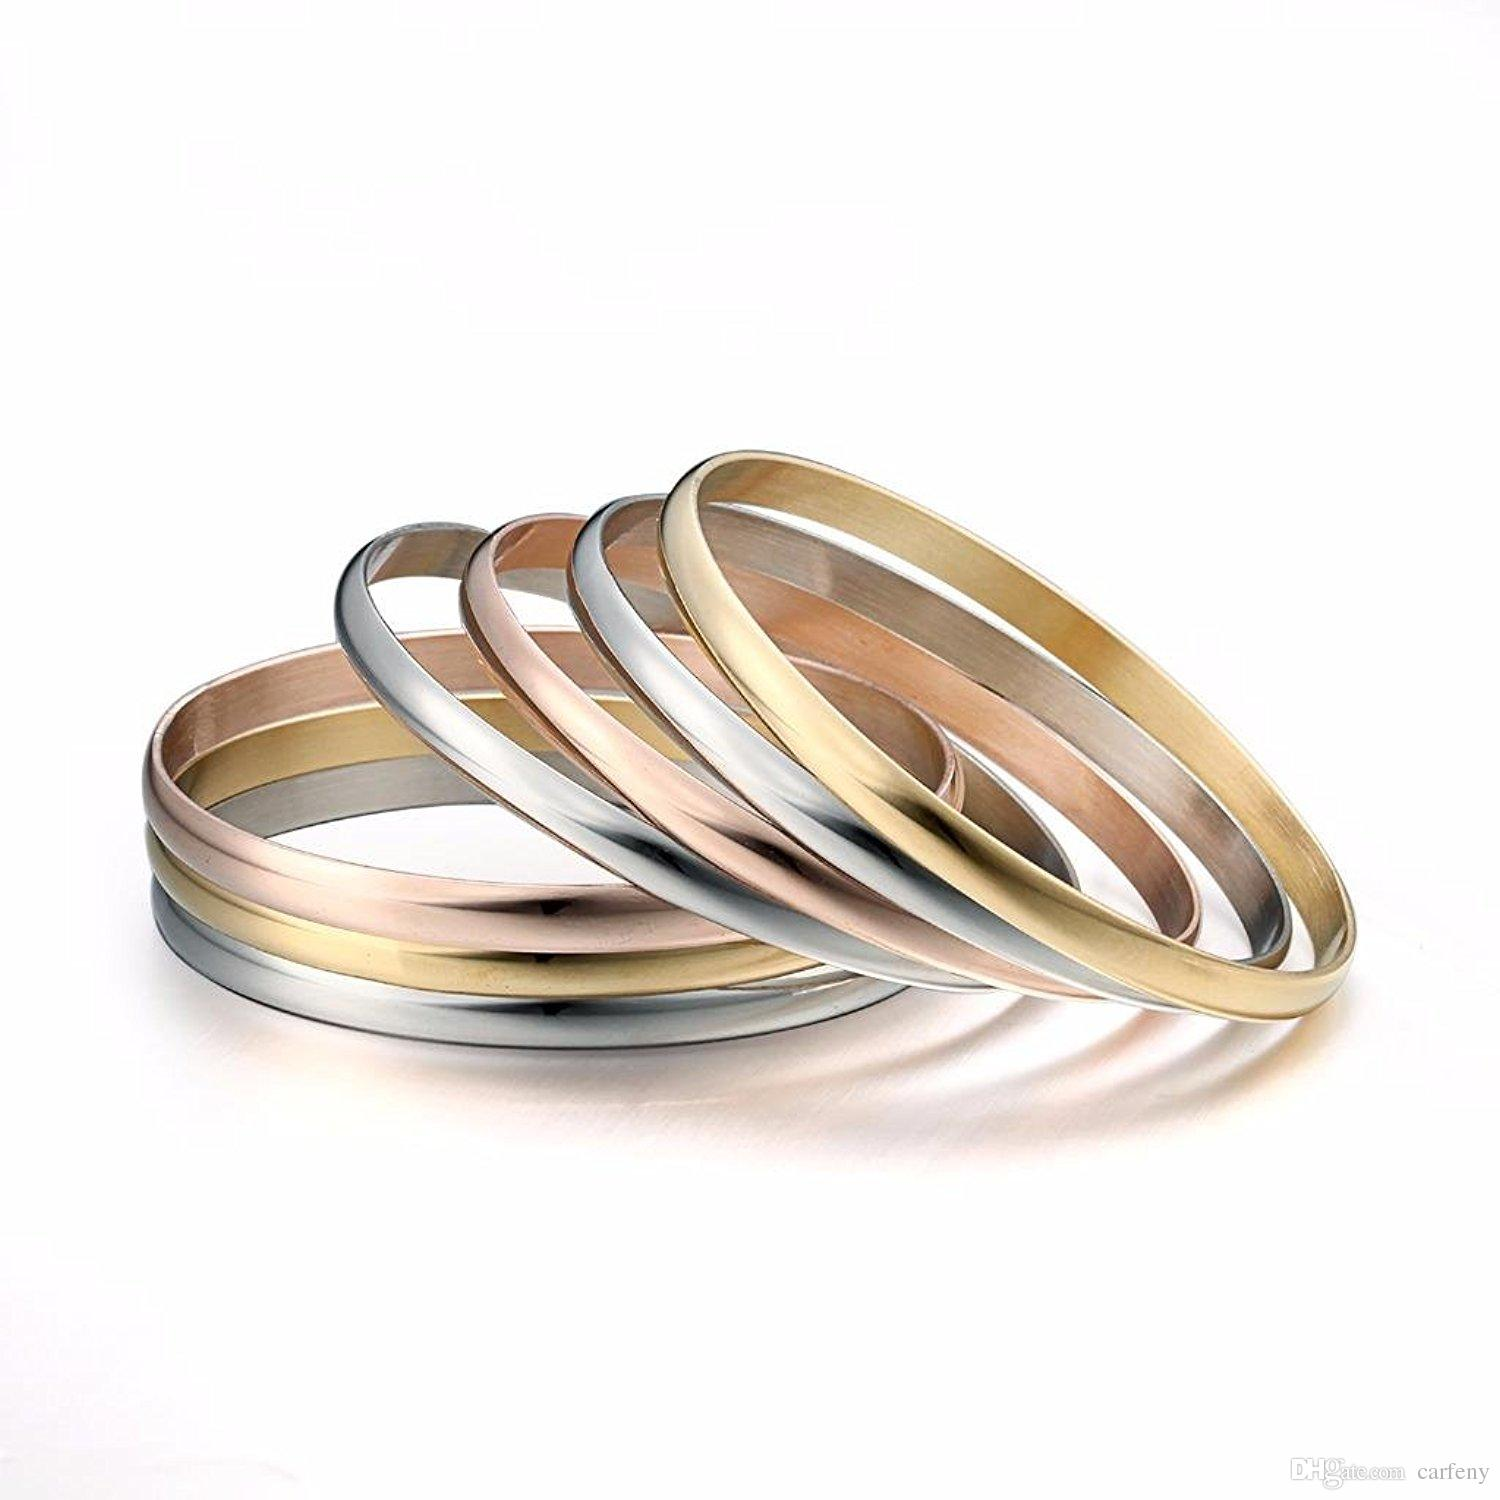 bangle ornaments bangles wiki wikipedia